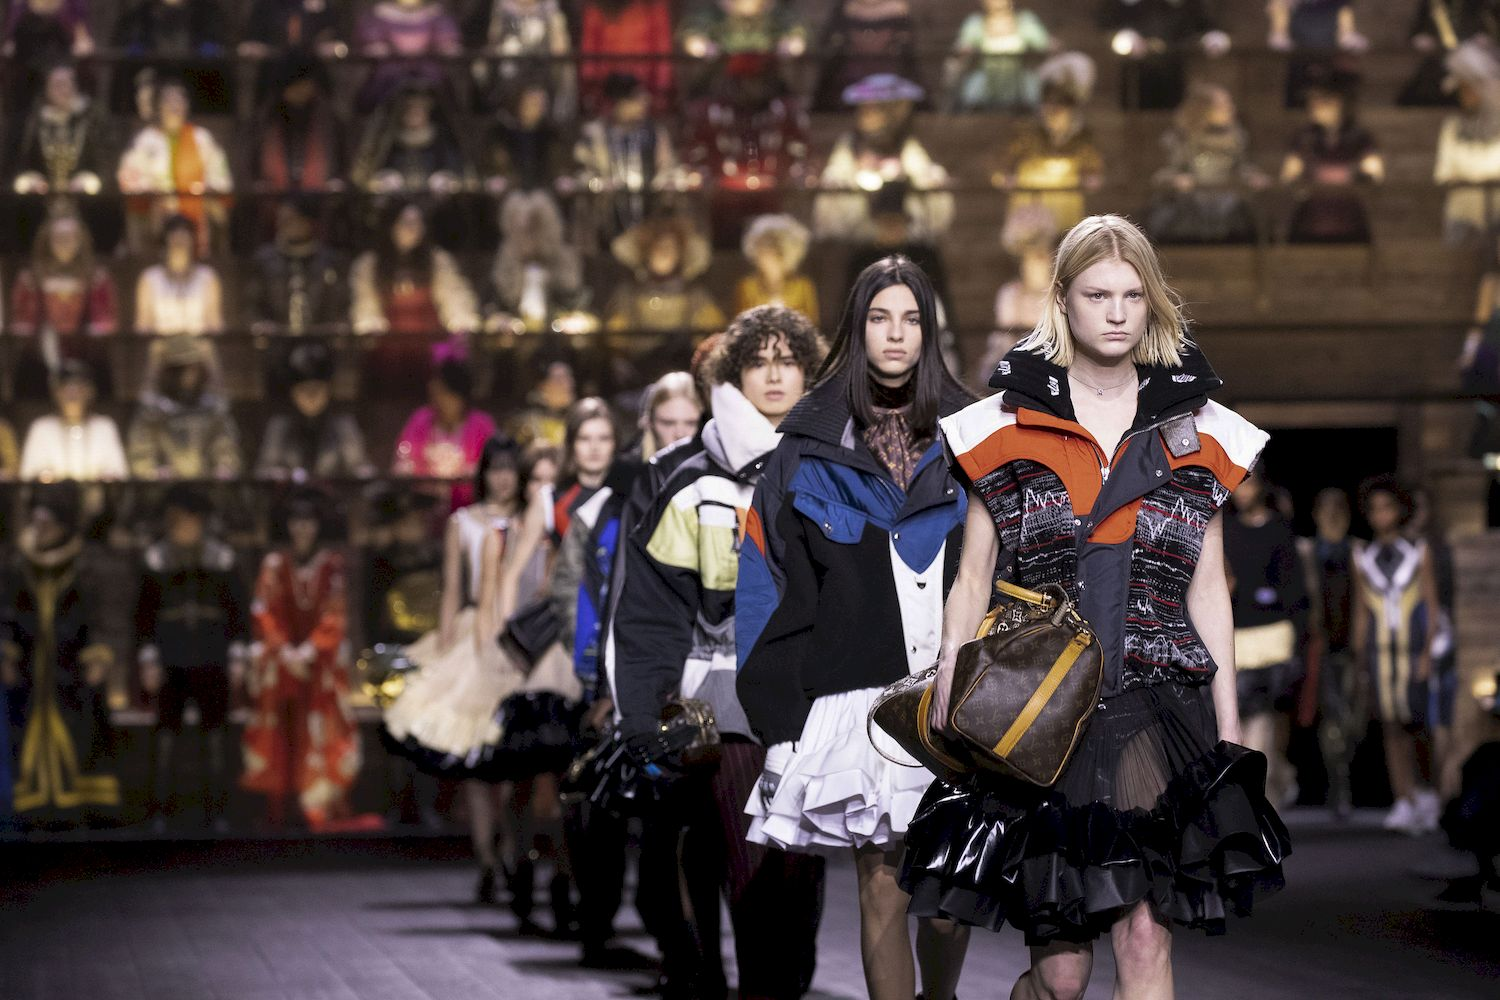 A spectacular clash of styles and genres at Louis Vuitton Fall/Winter 2020